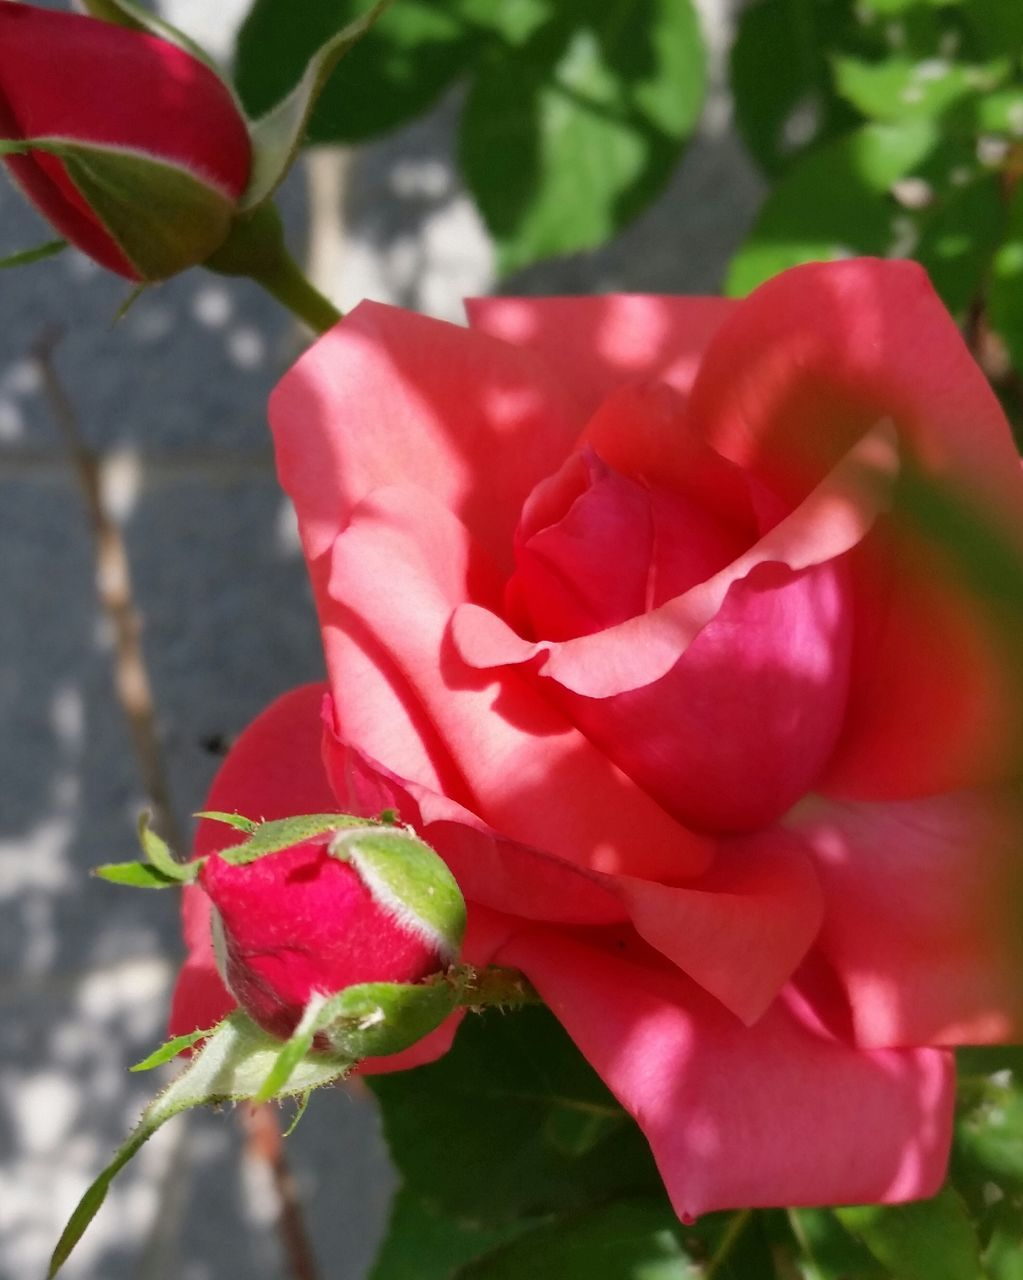 flower, petal, nature, beauty in nature, fragility, plant, rose - flower, flower head, growth, pink color, red, freshness, no people, outdoors, close-up, day, leaf, blooming, bougainvillea